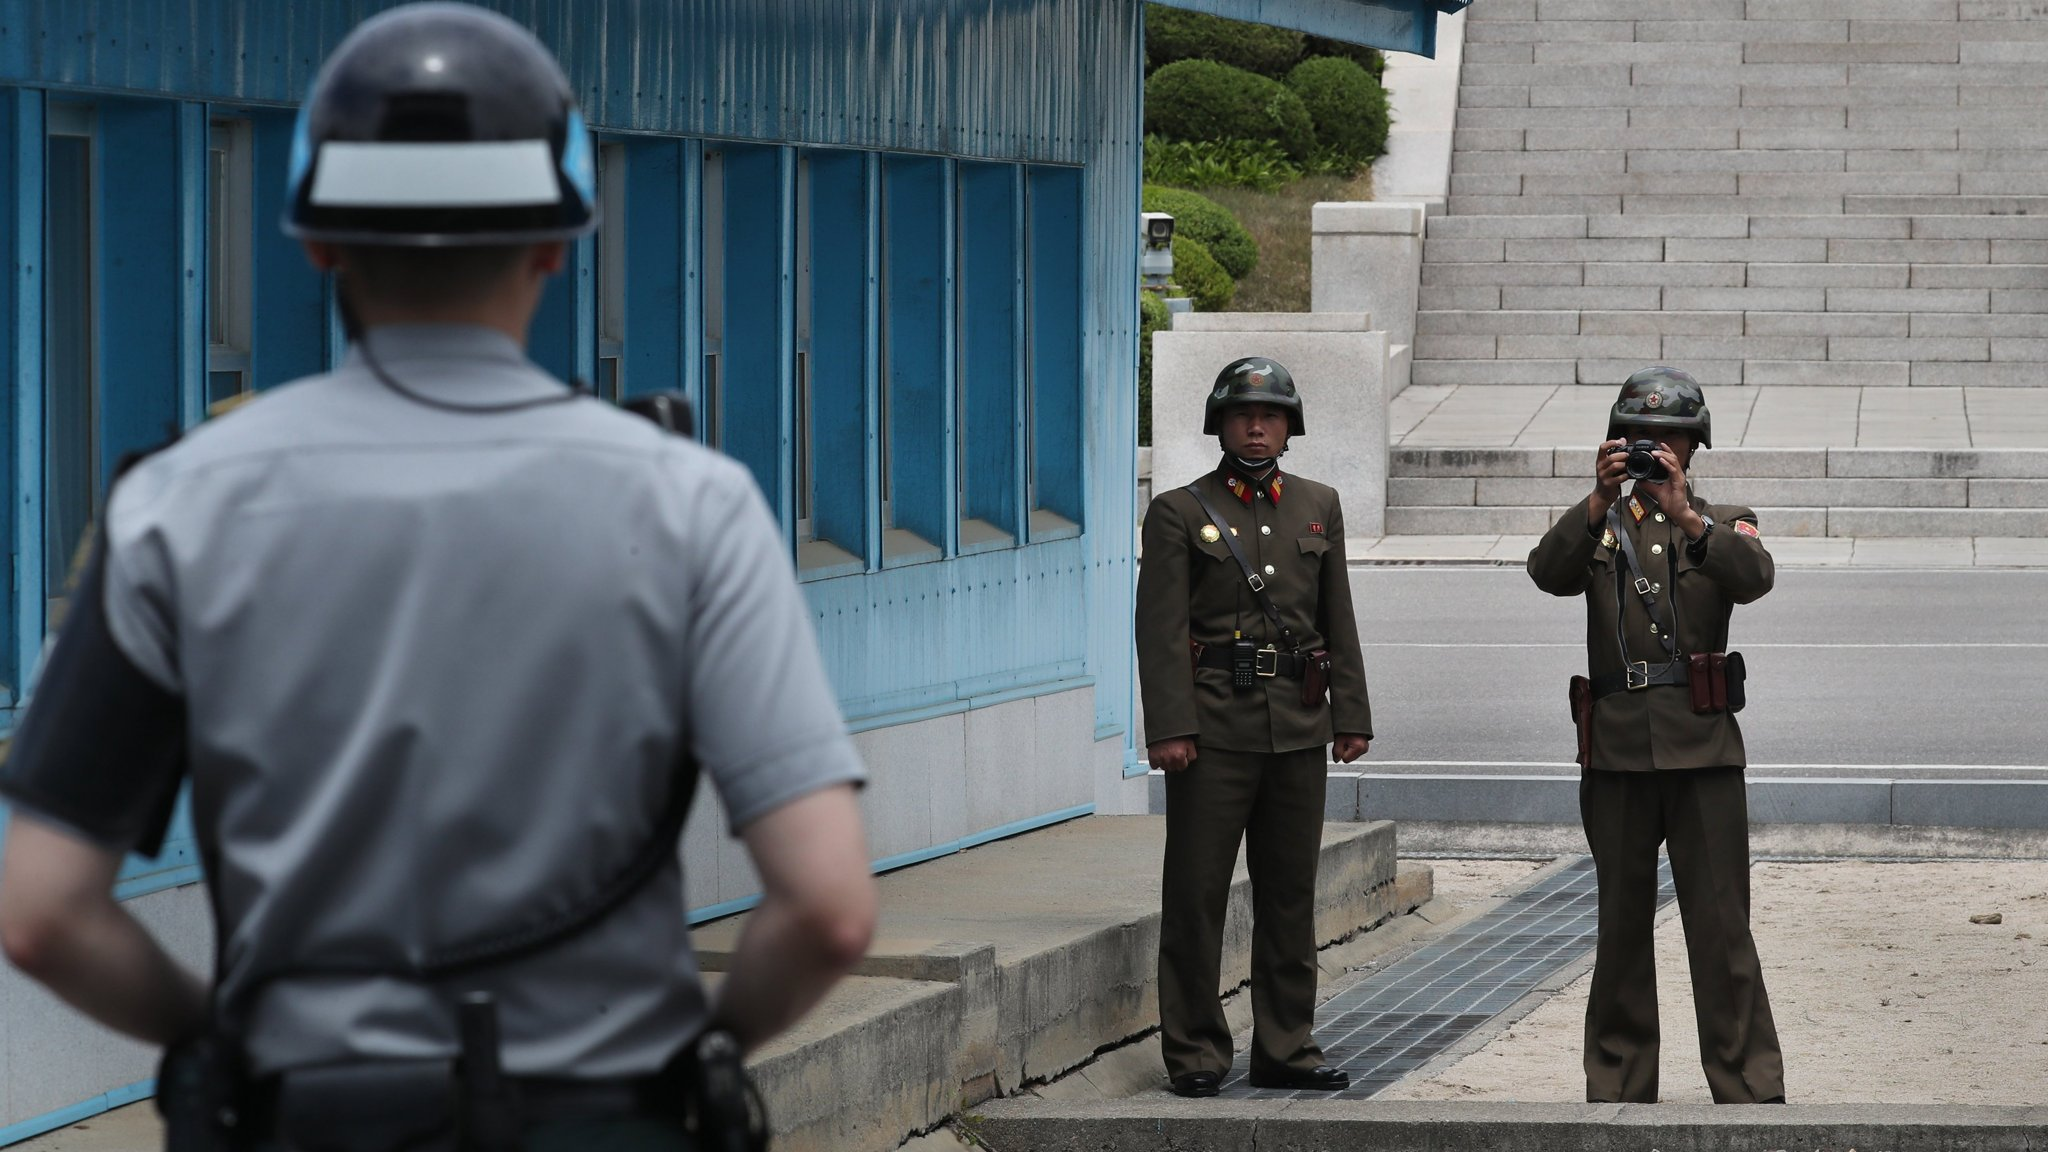 South Korea looks to broaden scope of talks with North